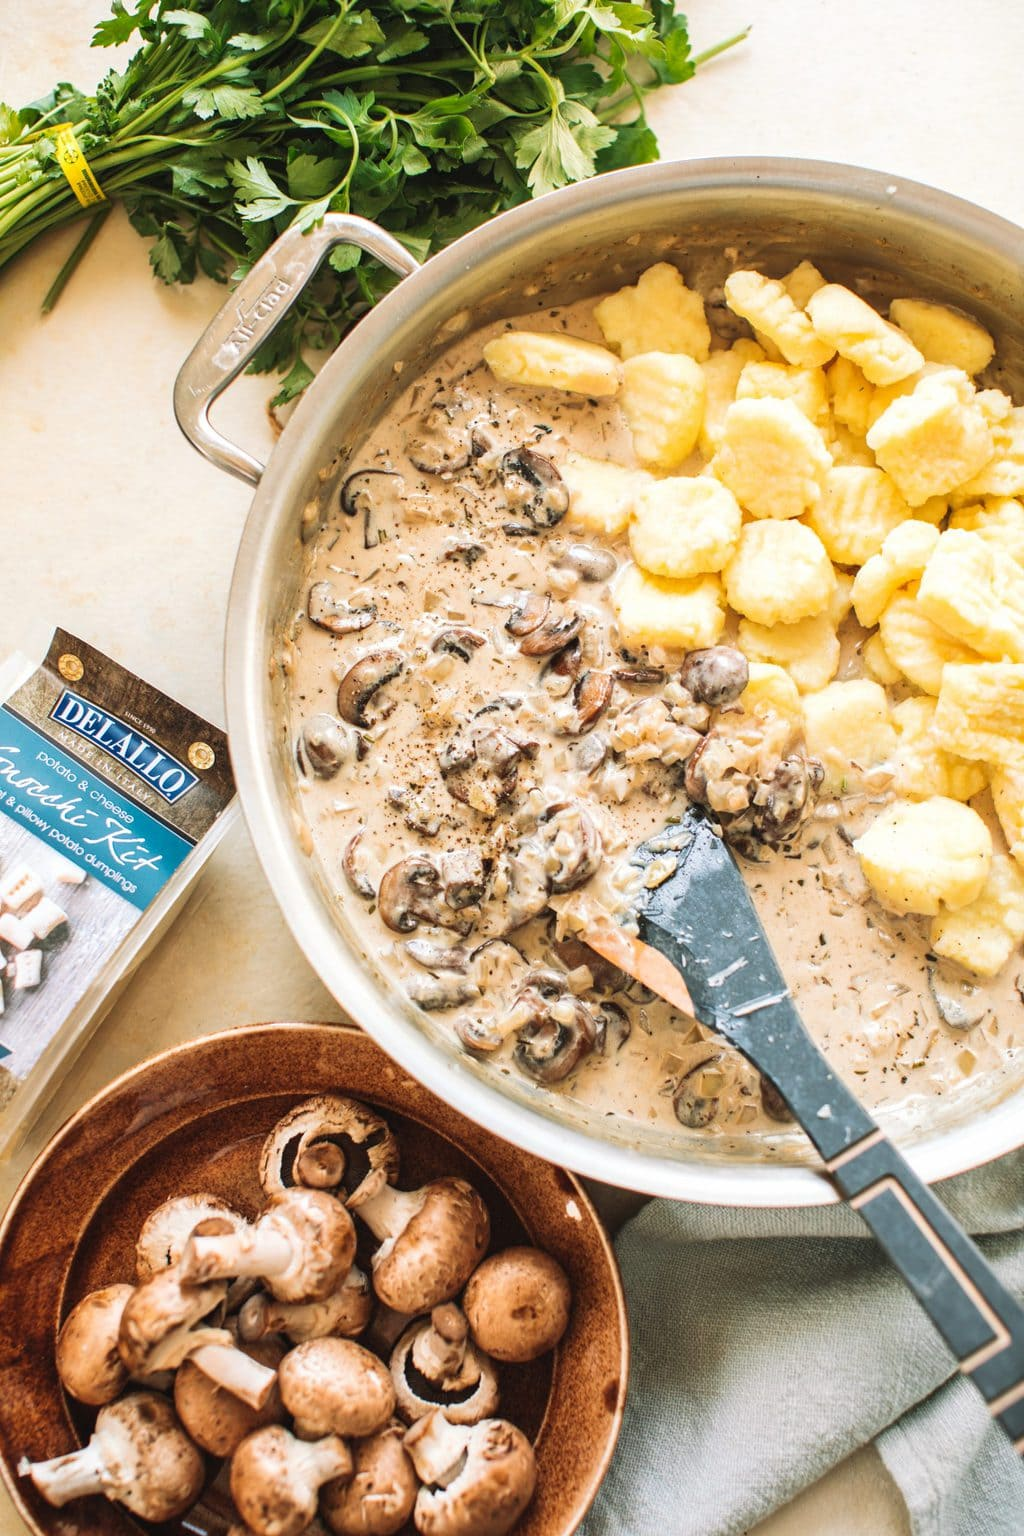 Mushrooms and gnocchi in a cream sauce garnished with parsley in a skillet.